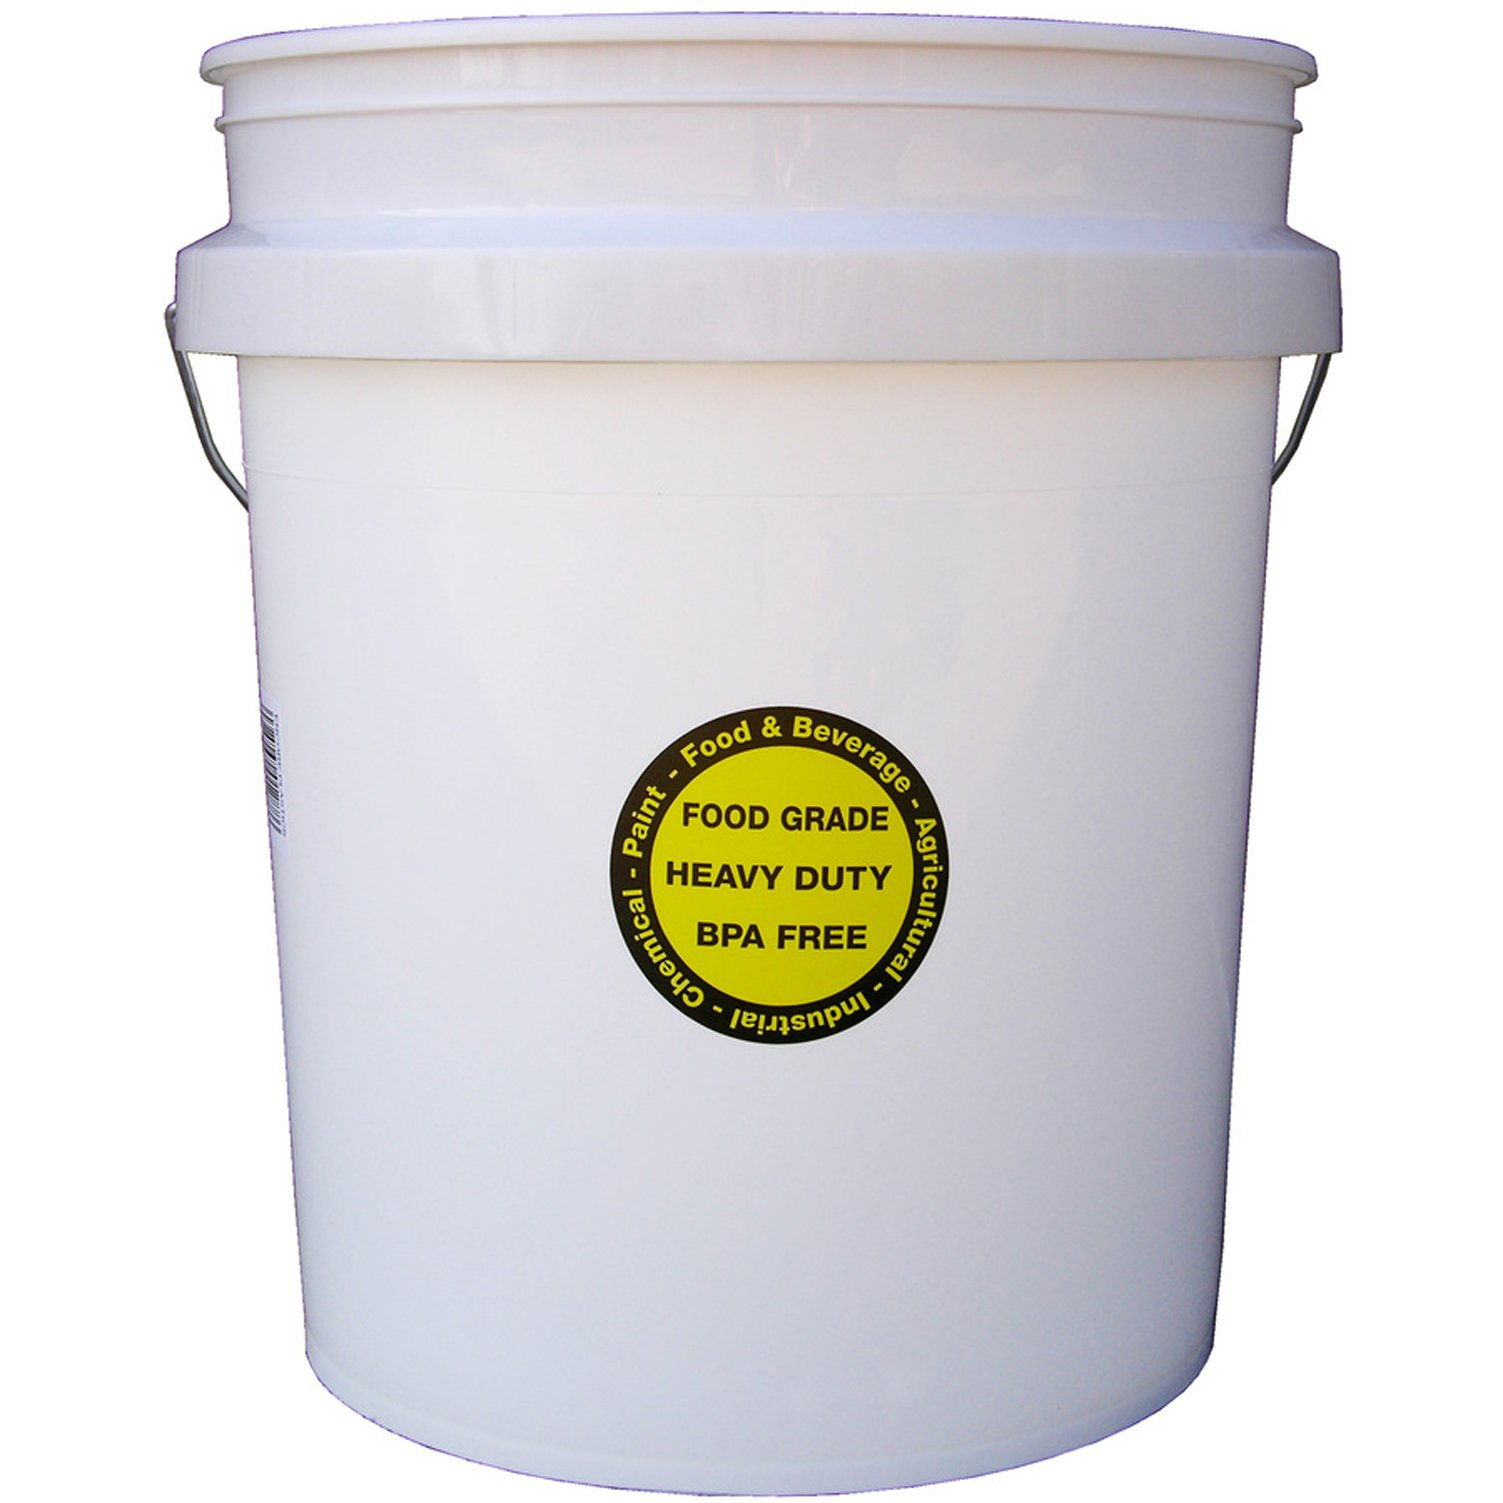 Encore Plastics 5-Gallon Commercial Food Grade Bucket FDA approved Pail Used for Paints Coatings Varnishes Water Sealants Concrete Patching Compounds Asphalt Coatings Soaps Detergents by Encore